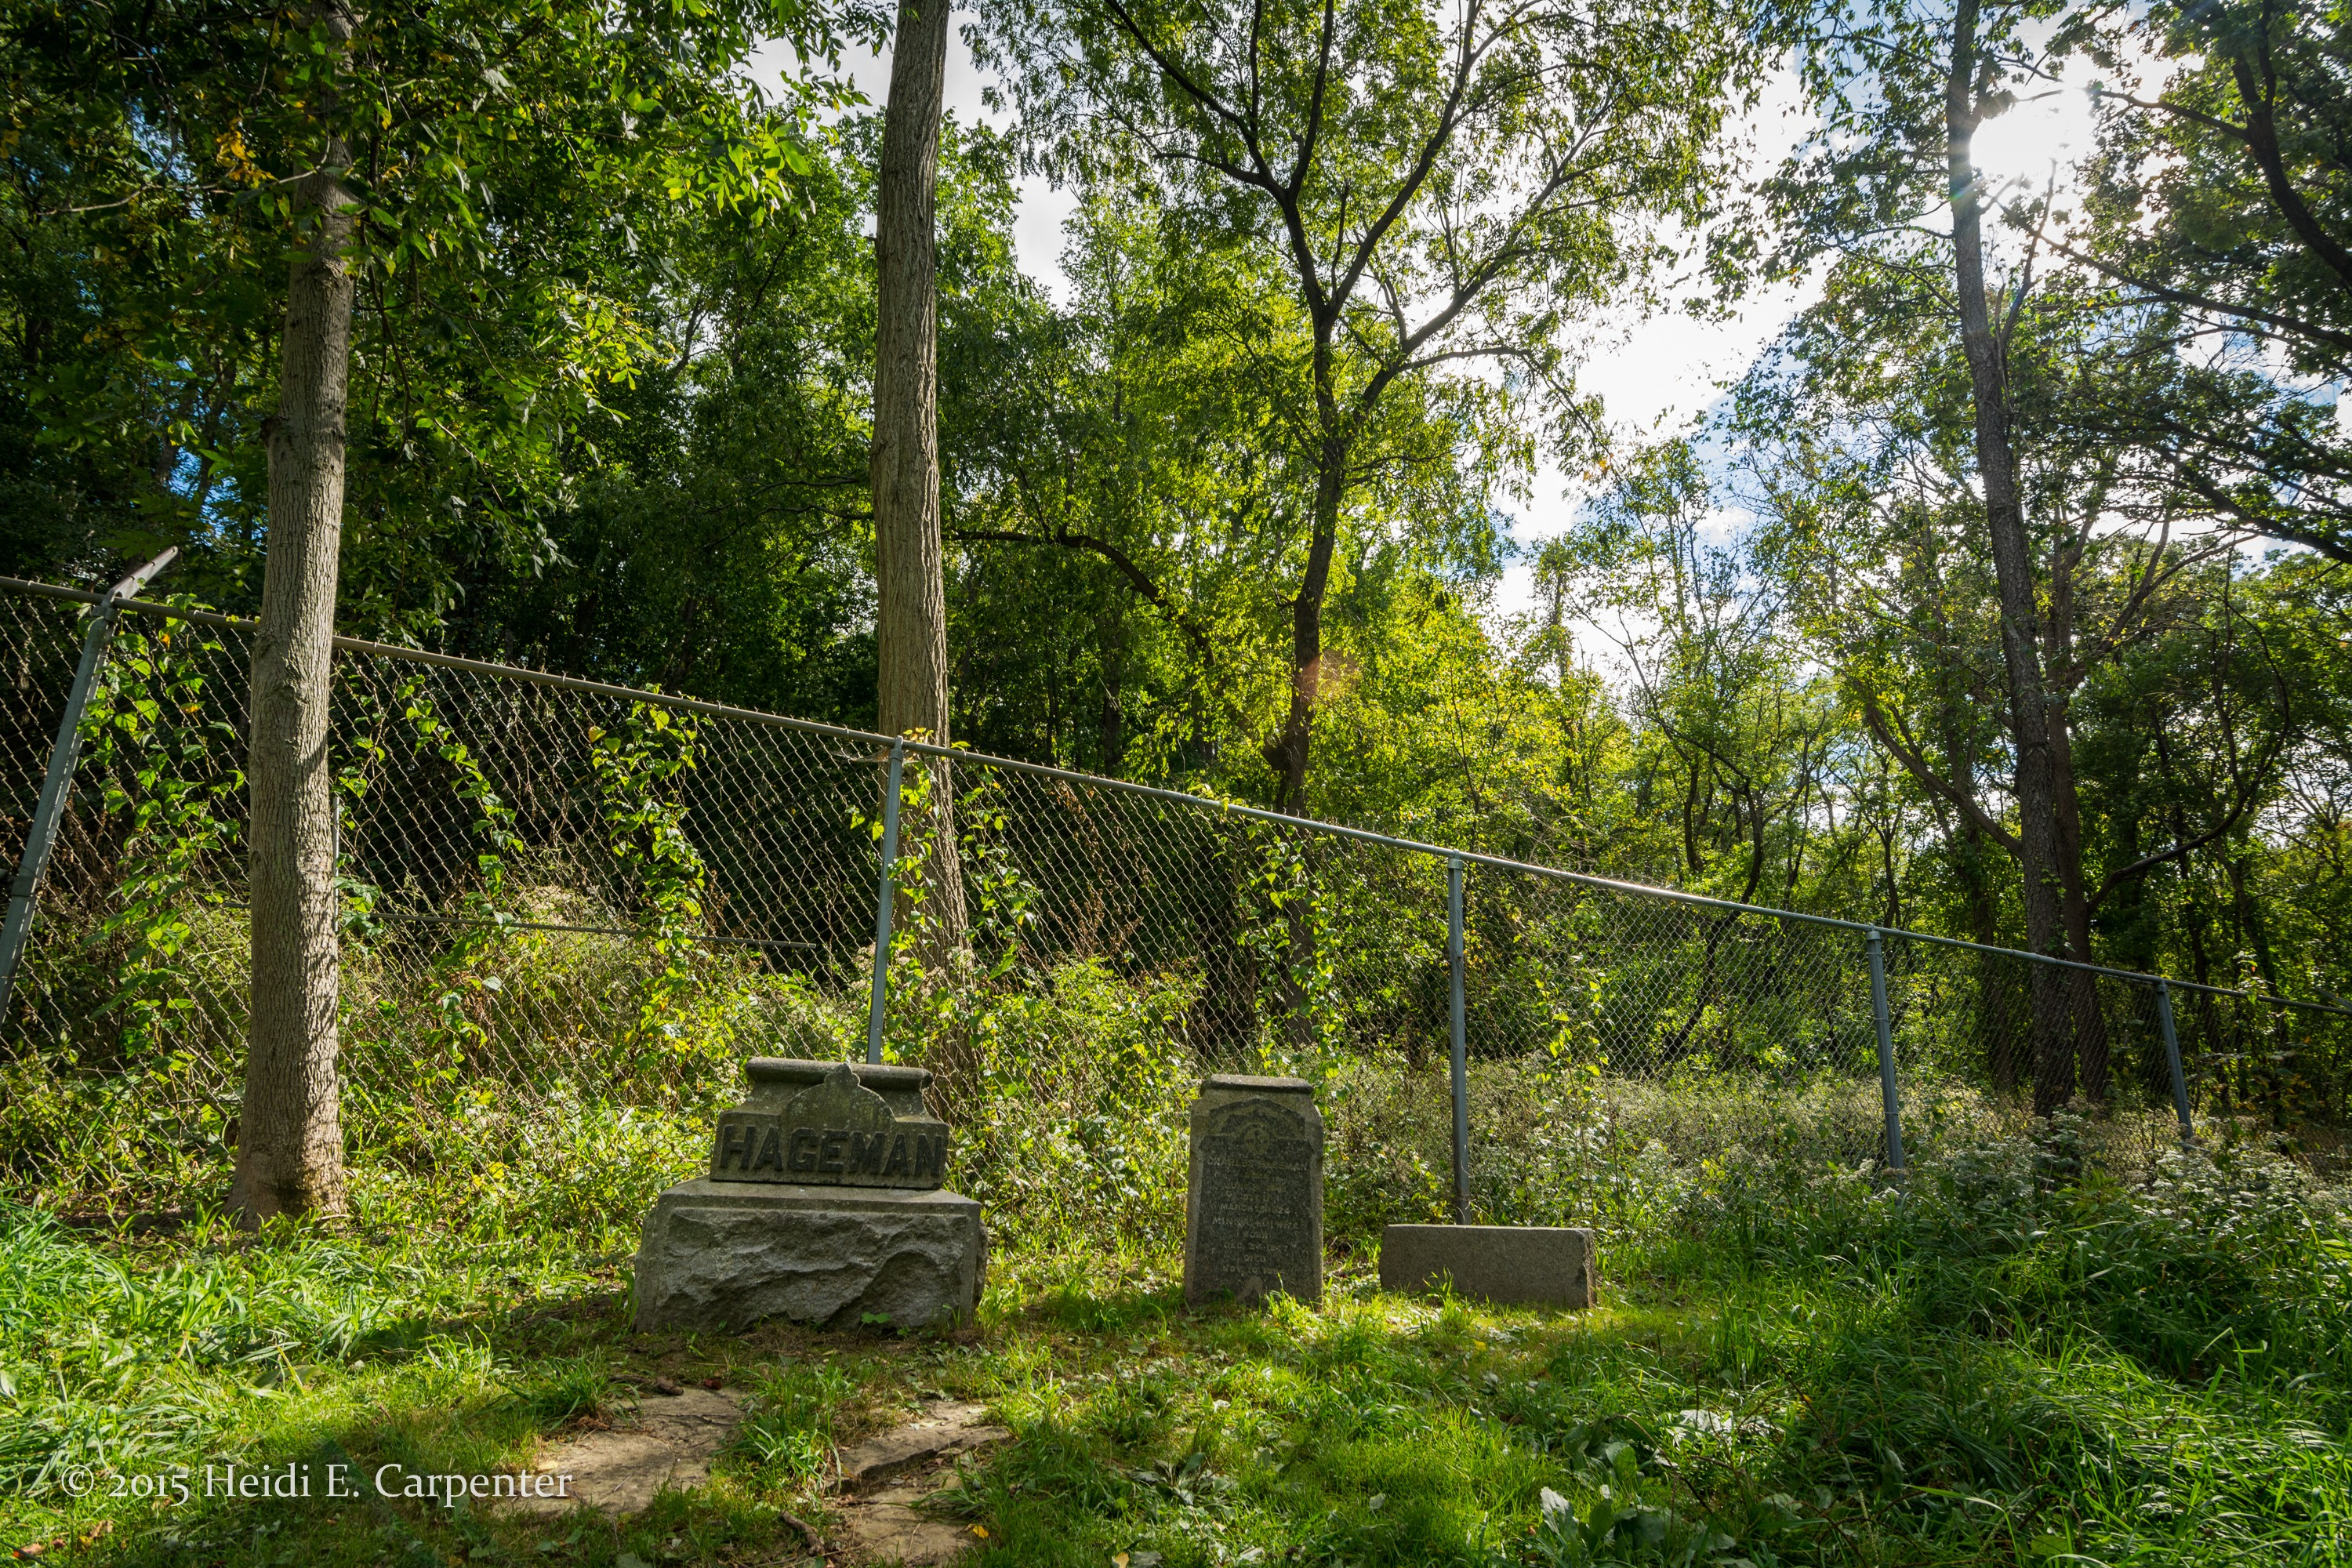 These Bachelor?s Grove Cemetery family monuments were vandalized and are missing their obelisks.